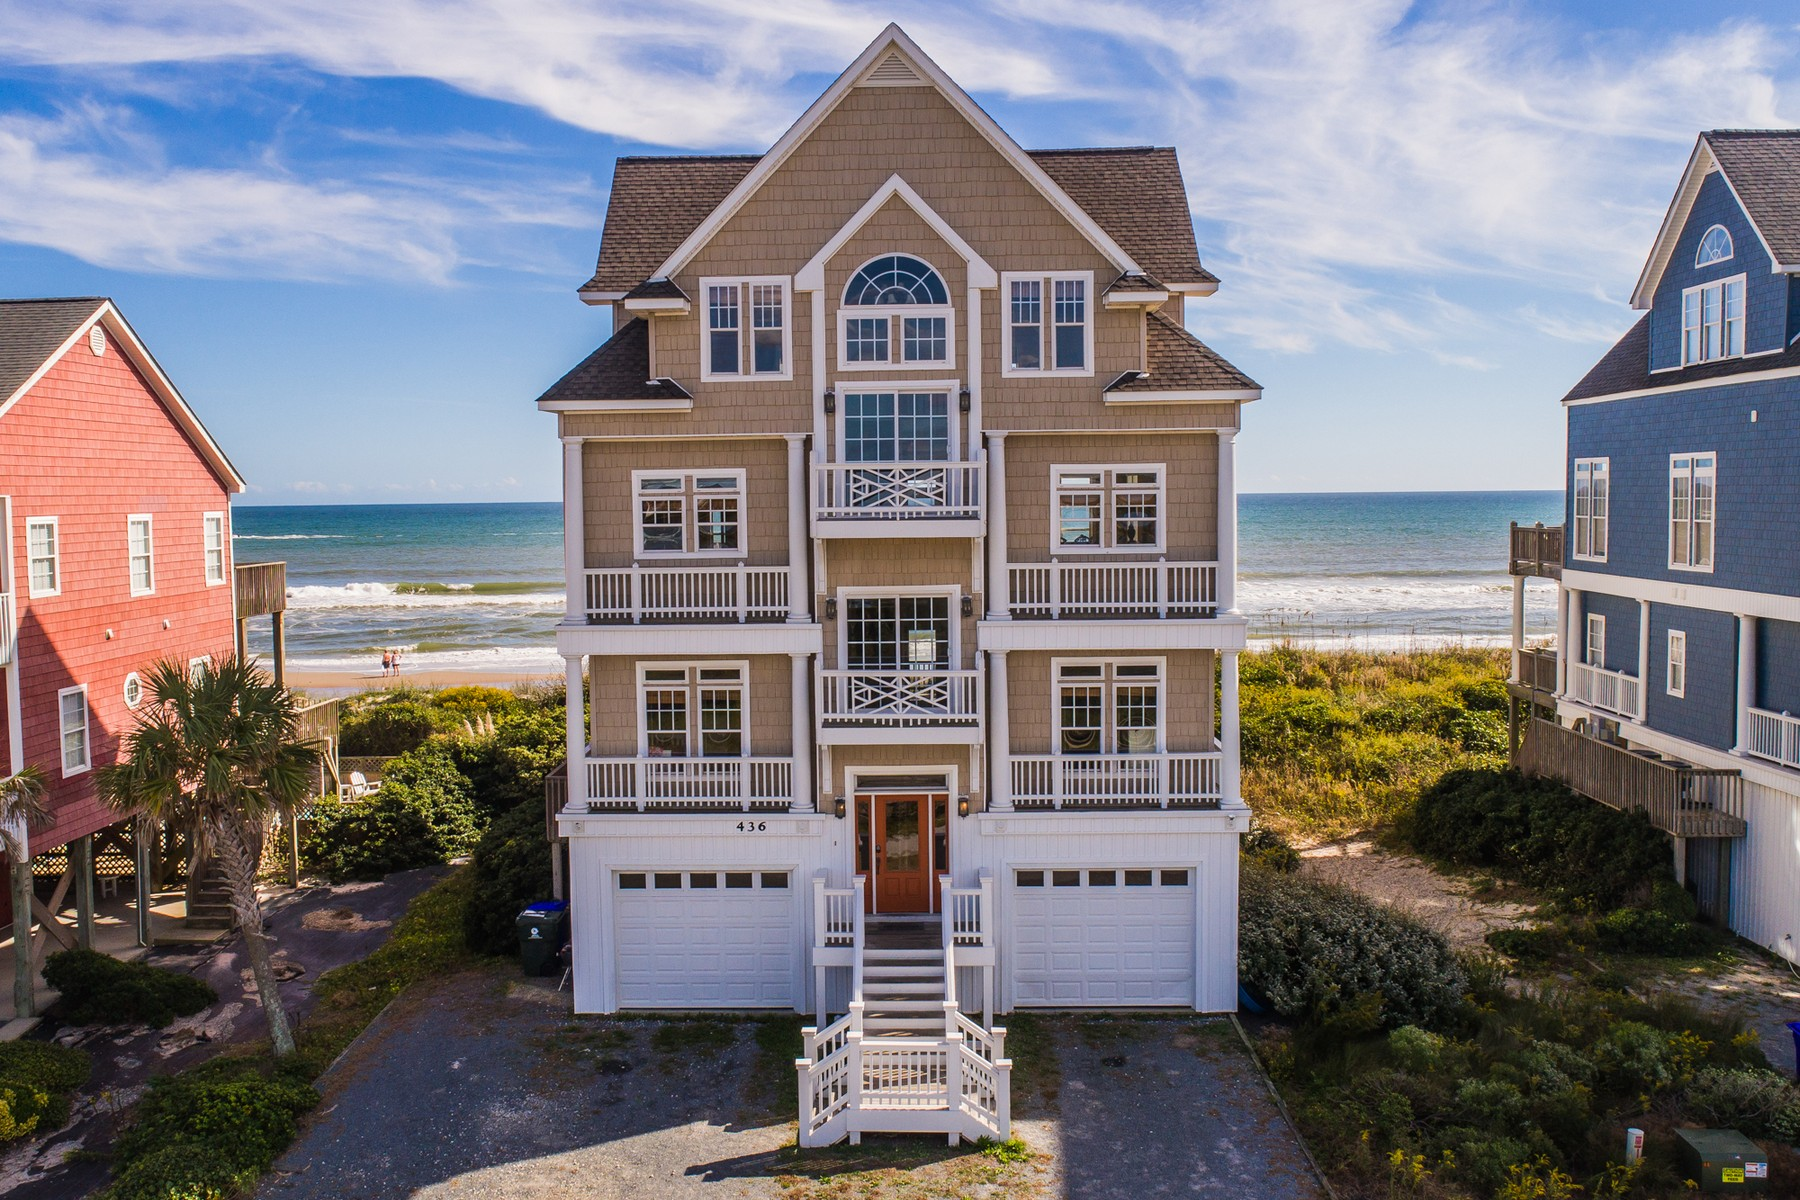 独户住宅 为 销售 在 Majestic Oceanfront Living 436 New River Inlet Road, N Topsail Beach, 北卡罗来纳州, 28460 美国